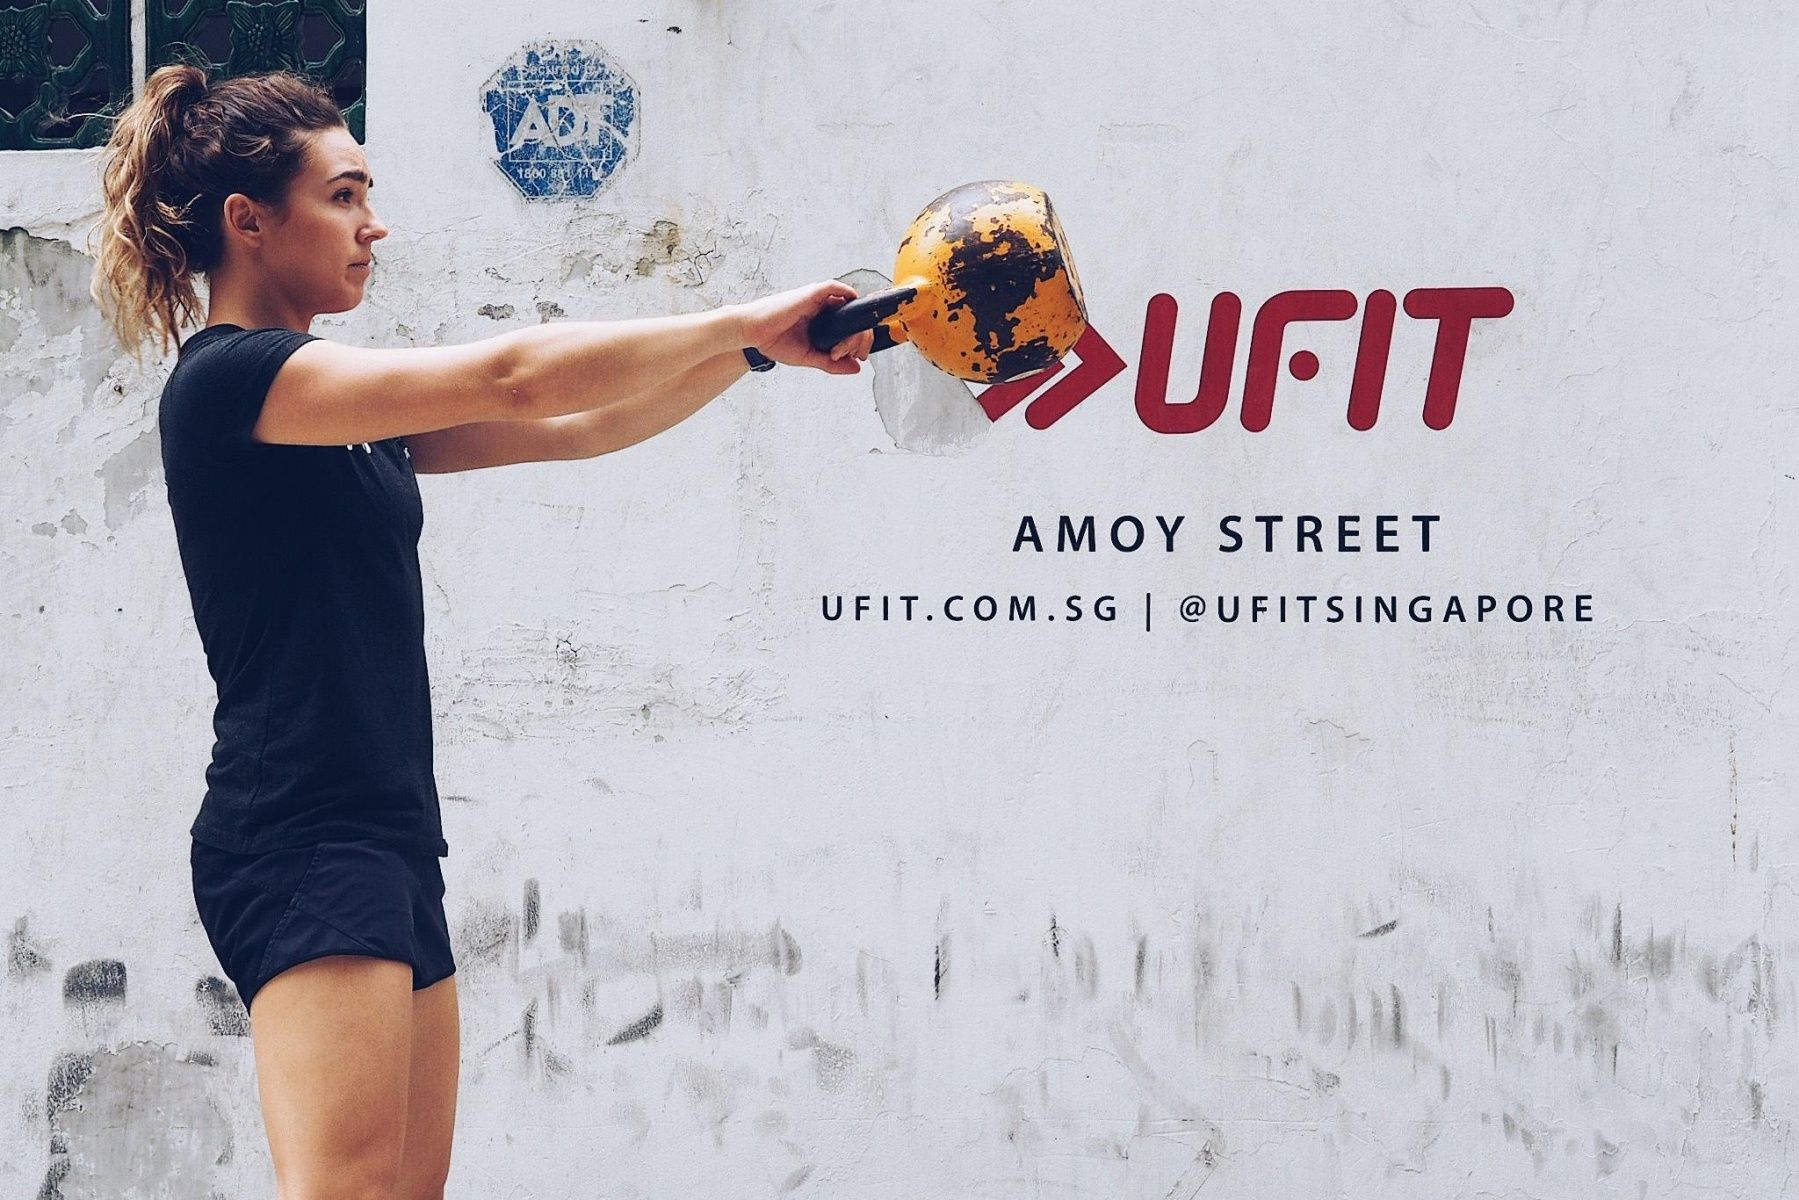 Optimise Your Workout Time With UFIT